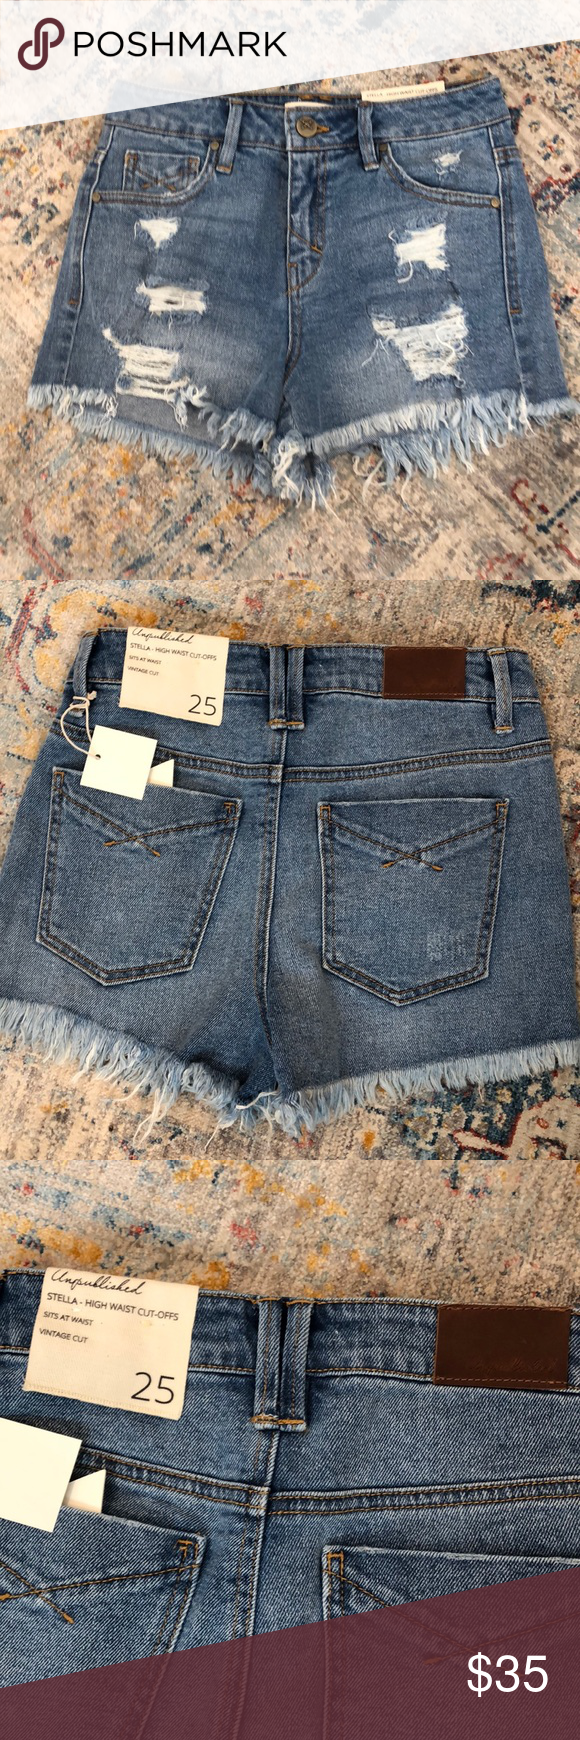 5feacf73a5 Unpublished denim Stella High Waist Shorts 25 Stella high waist cut off  shorts in a light wash with distressing in the front. Never worn.